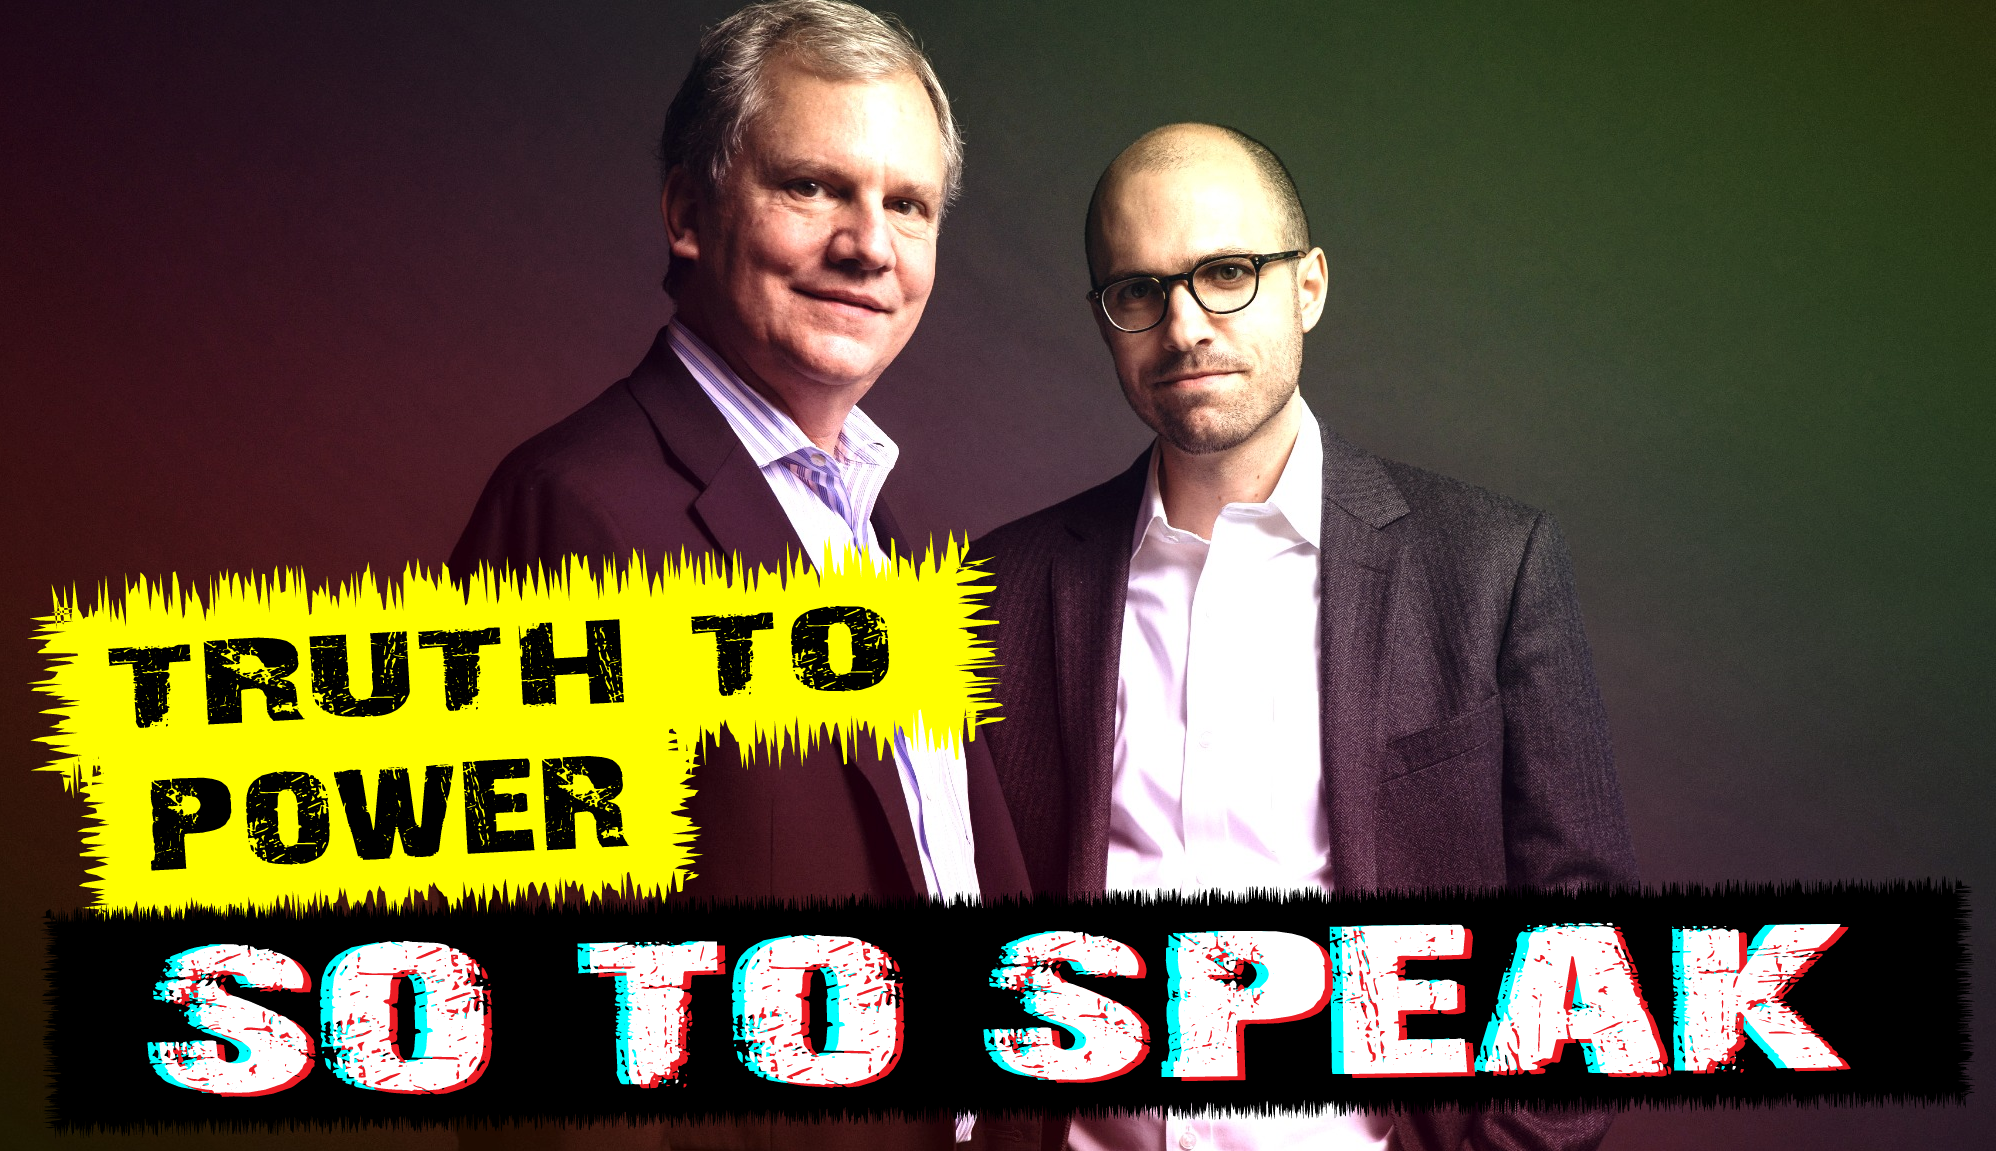 Sulzberger junior and senior. Filthy Loxists who are campaigning to destroy white America